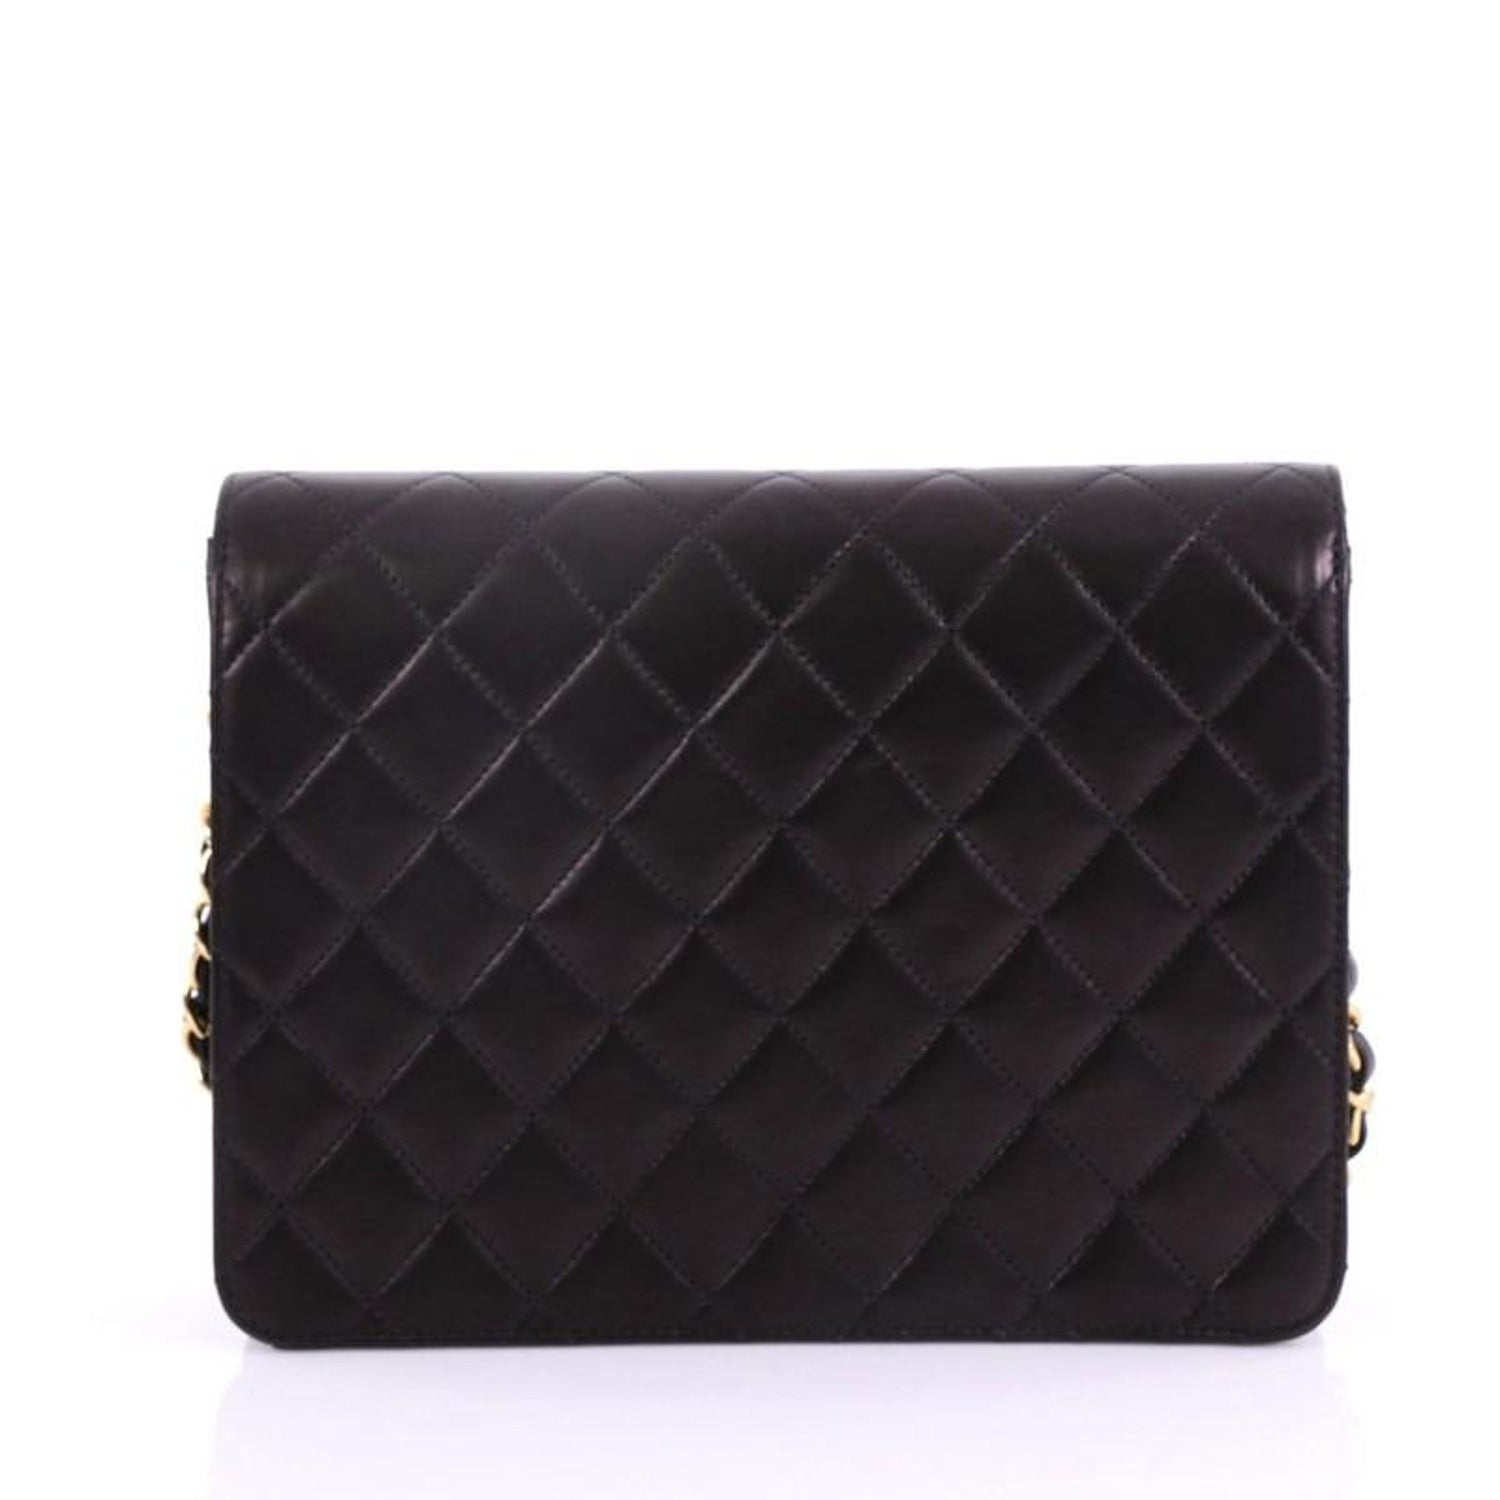 bbf1e00e590e Chanel Vintage Clutch with Chain Quilted Leather Small at 1stdibs